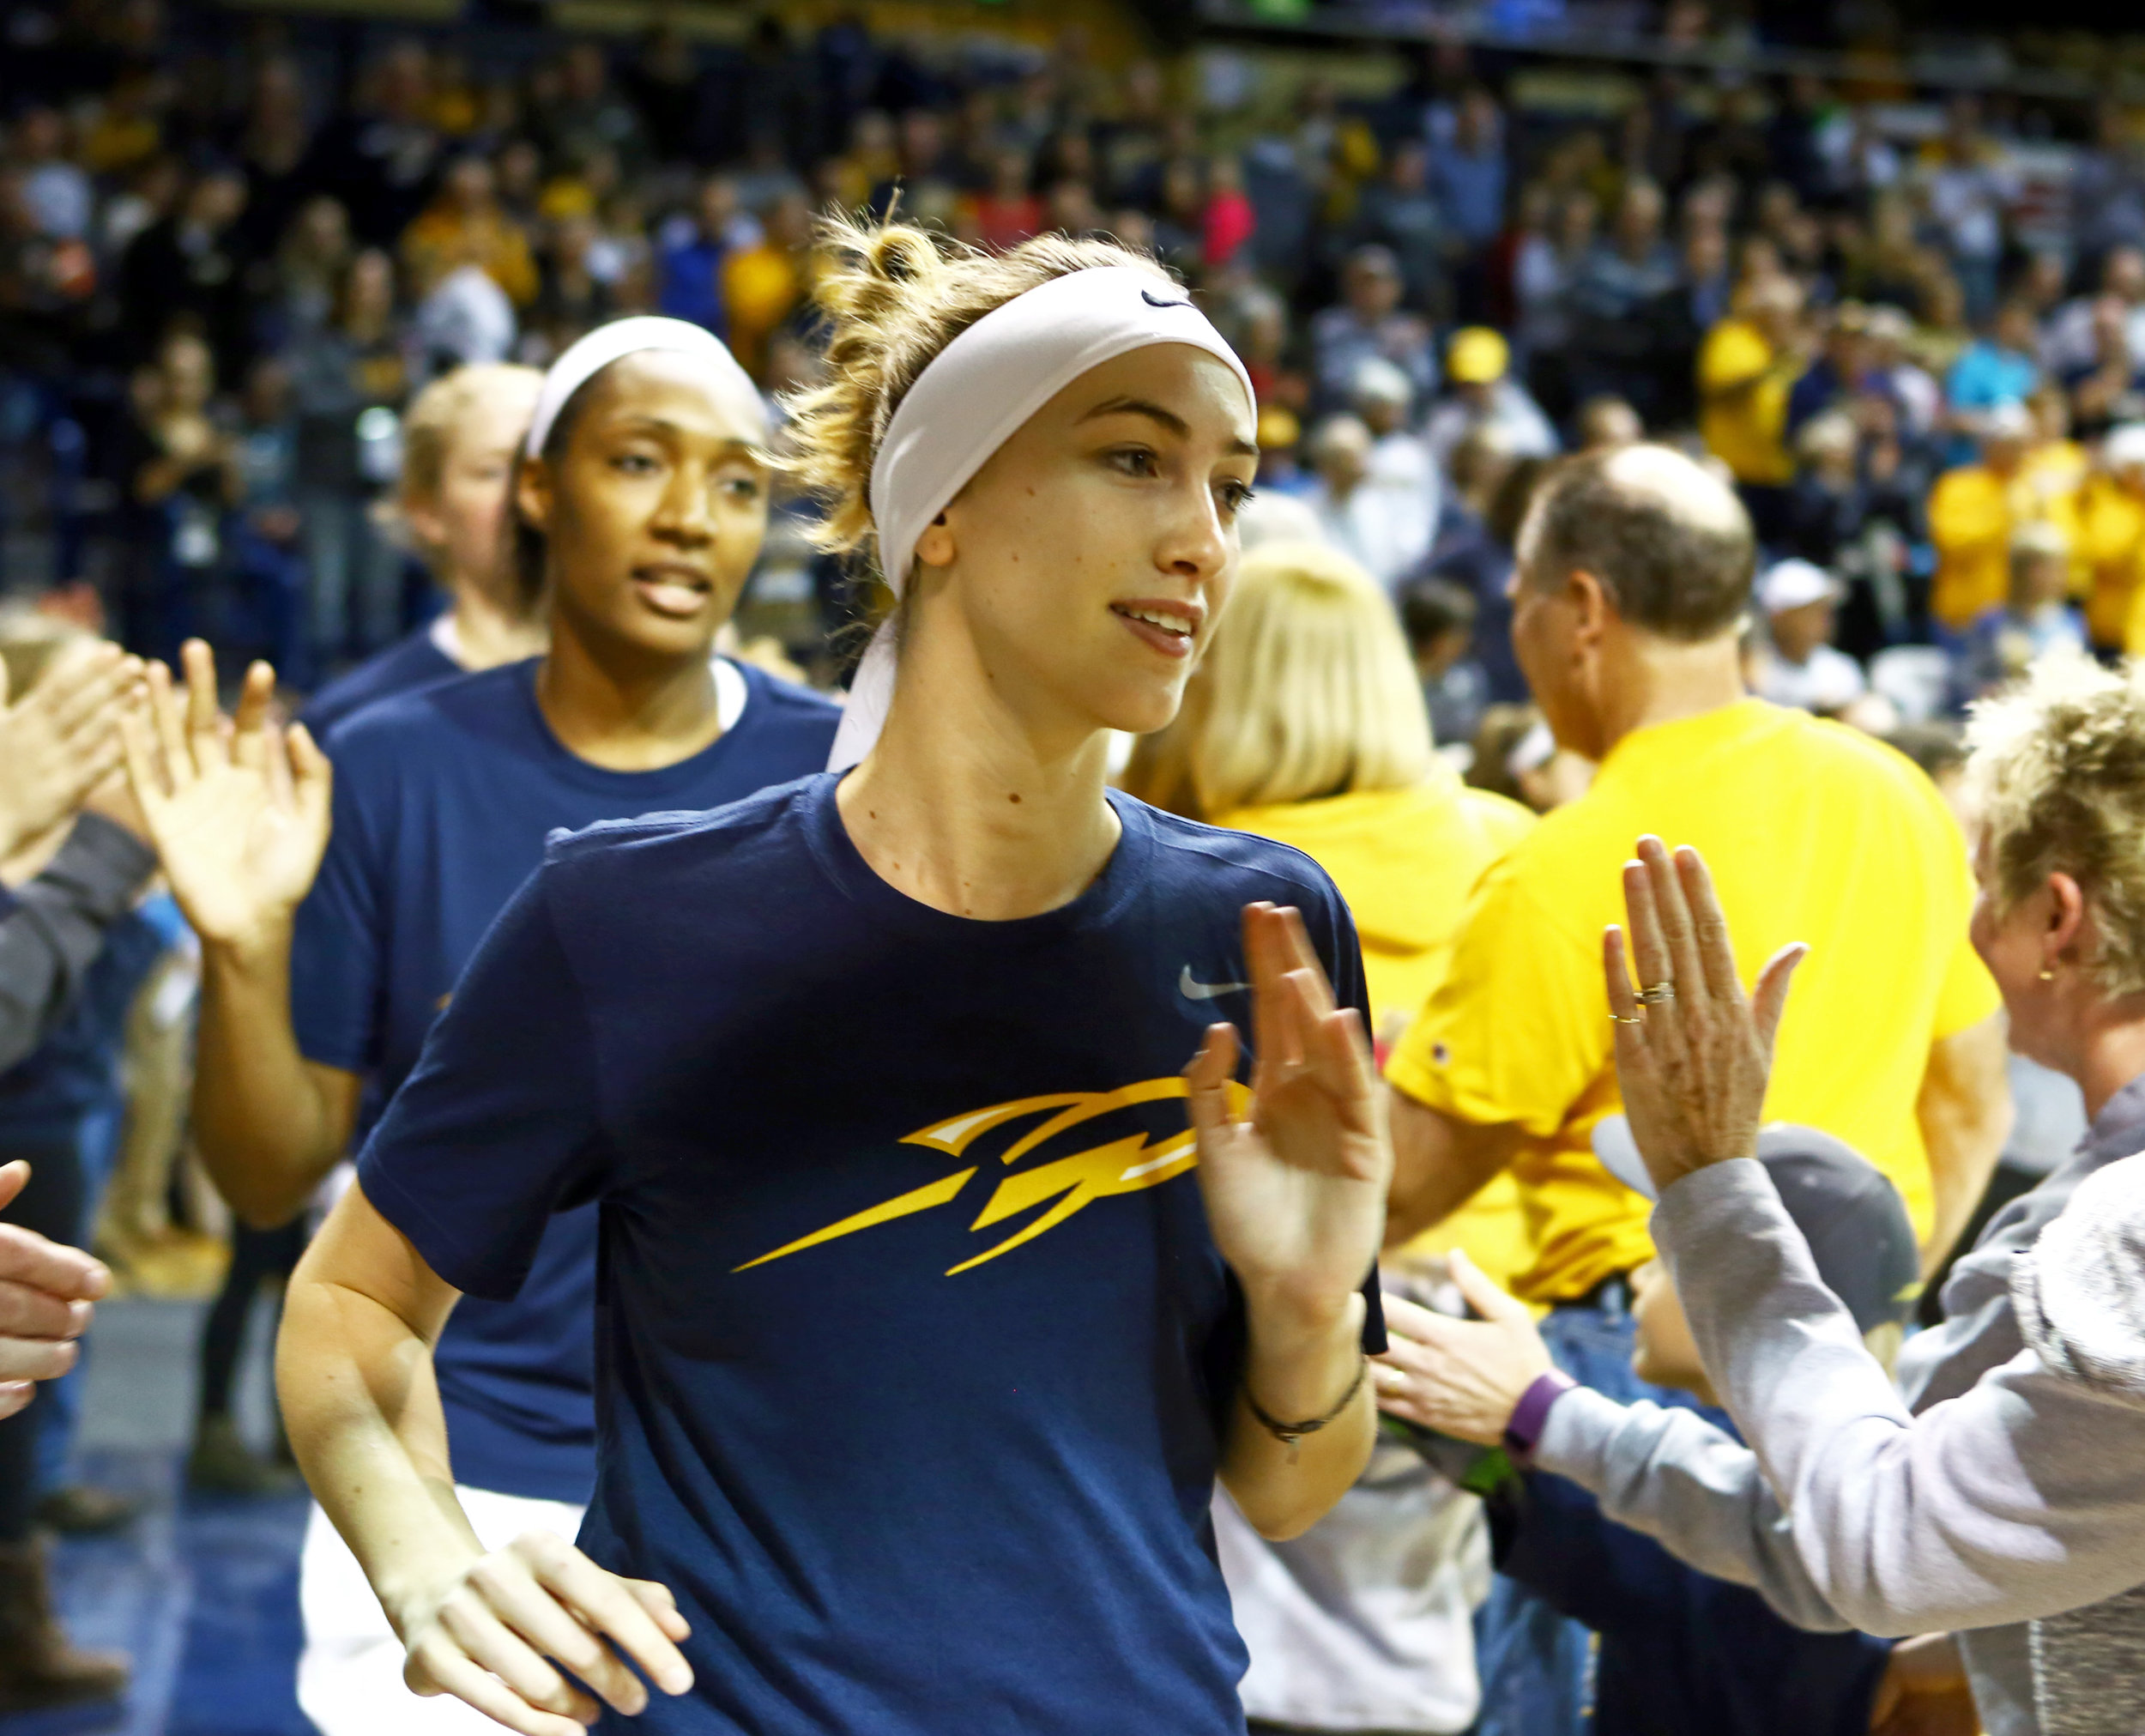 University of Toledo guard Mariella Santucci (3) takes the court with the rest of the women's basketball team through the tunnel before the start of the women's basketball game against Notre Dame at Savage Arena on the University of Toledo's campus on Sunday, Dec. 18, 2016.